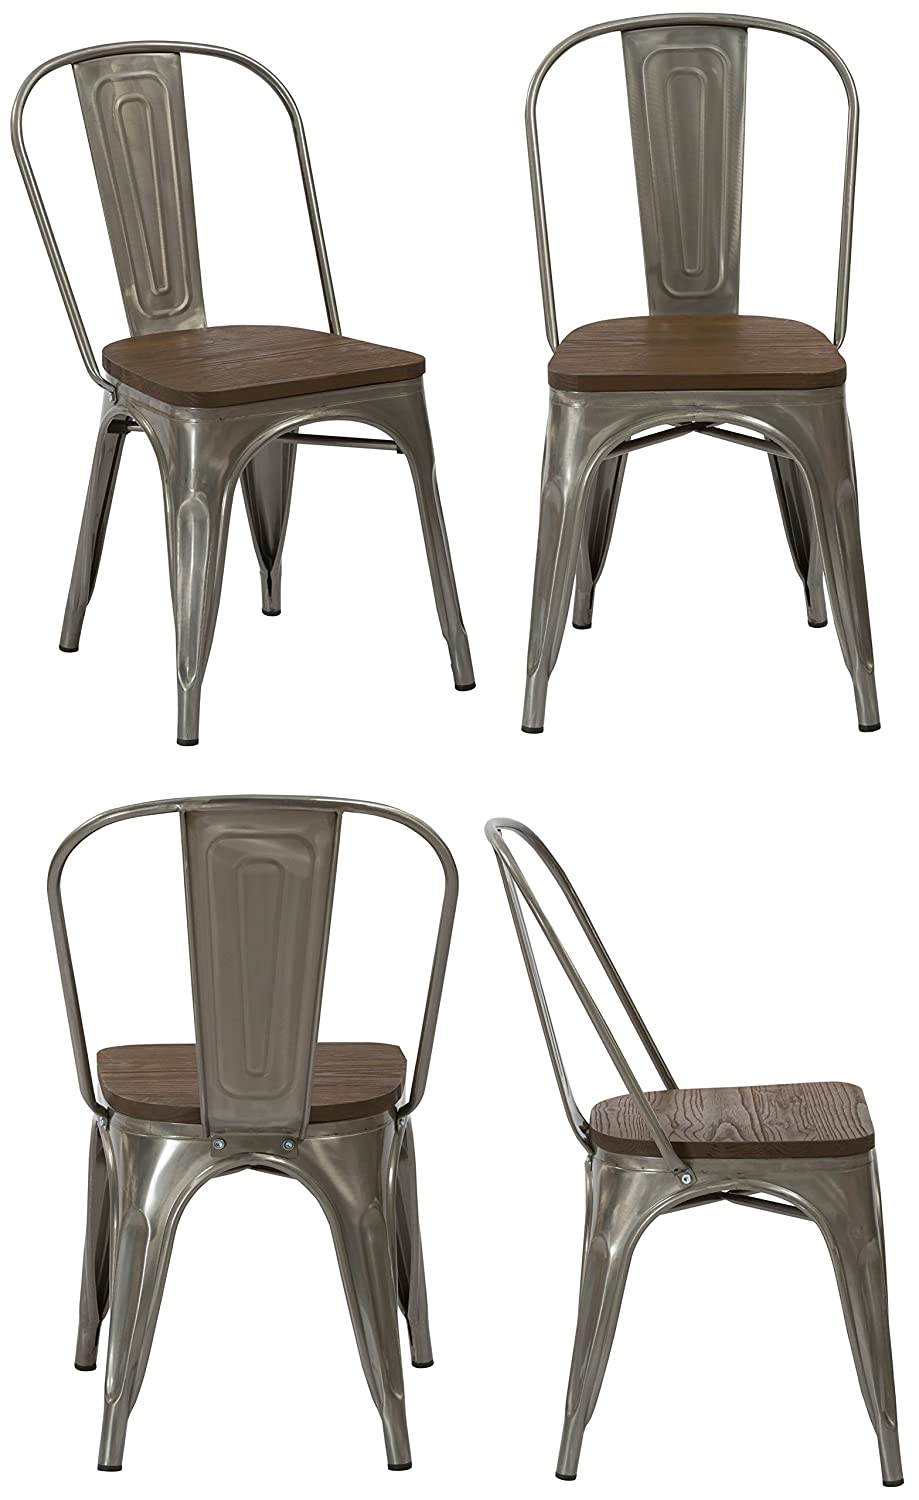 BTEXPERT Industrial Metal Vintage Tabouret Antique Distressed Dining Bistro Cafe Stackable Side Chair Wood Seat Set of 4